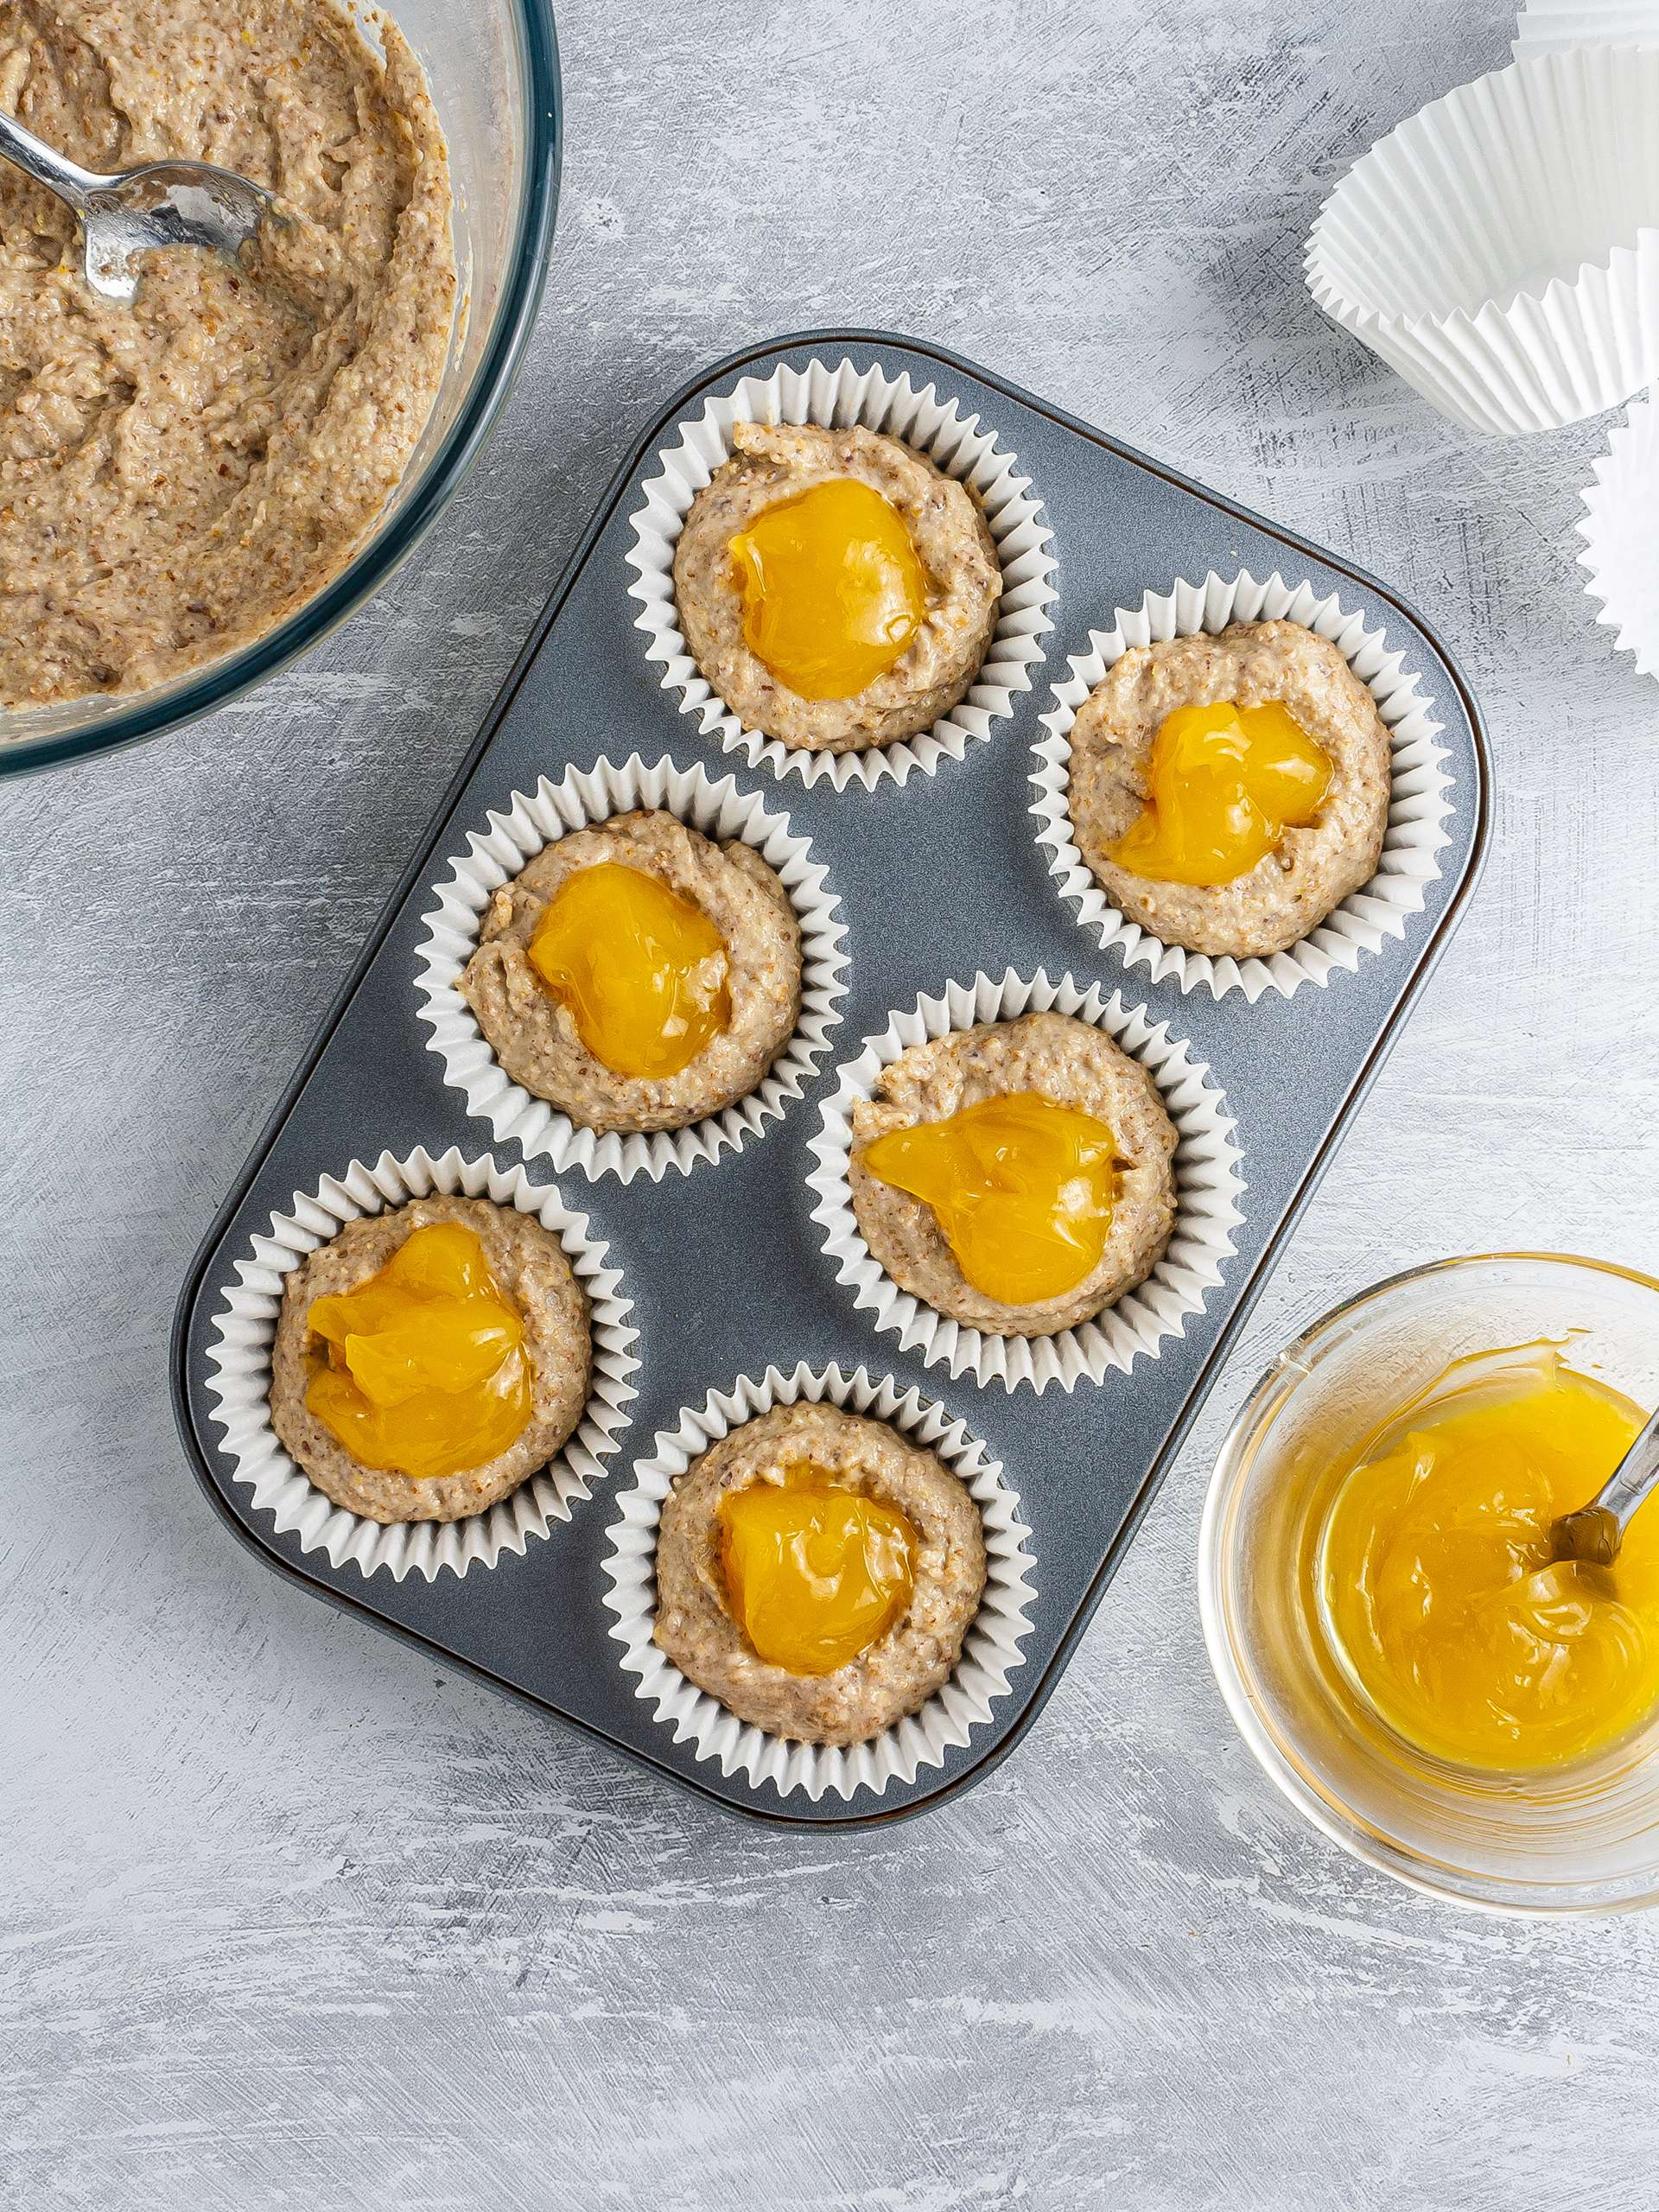 Muffin batter in cases with lemon curd